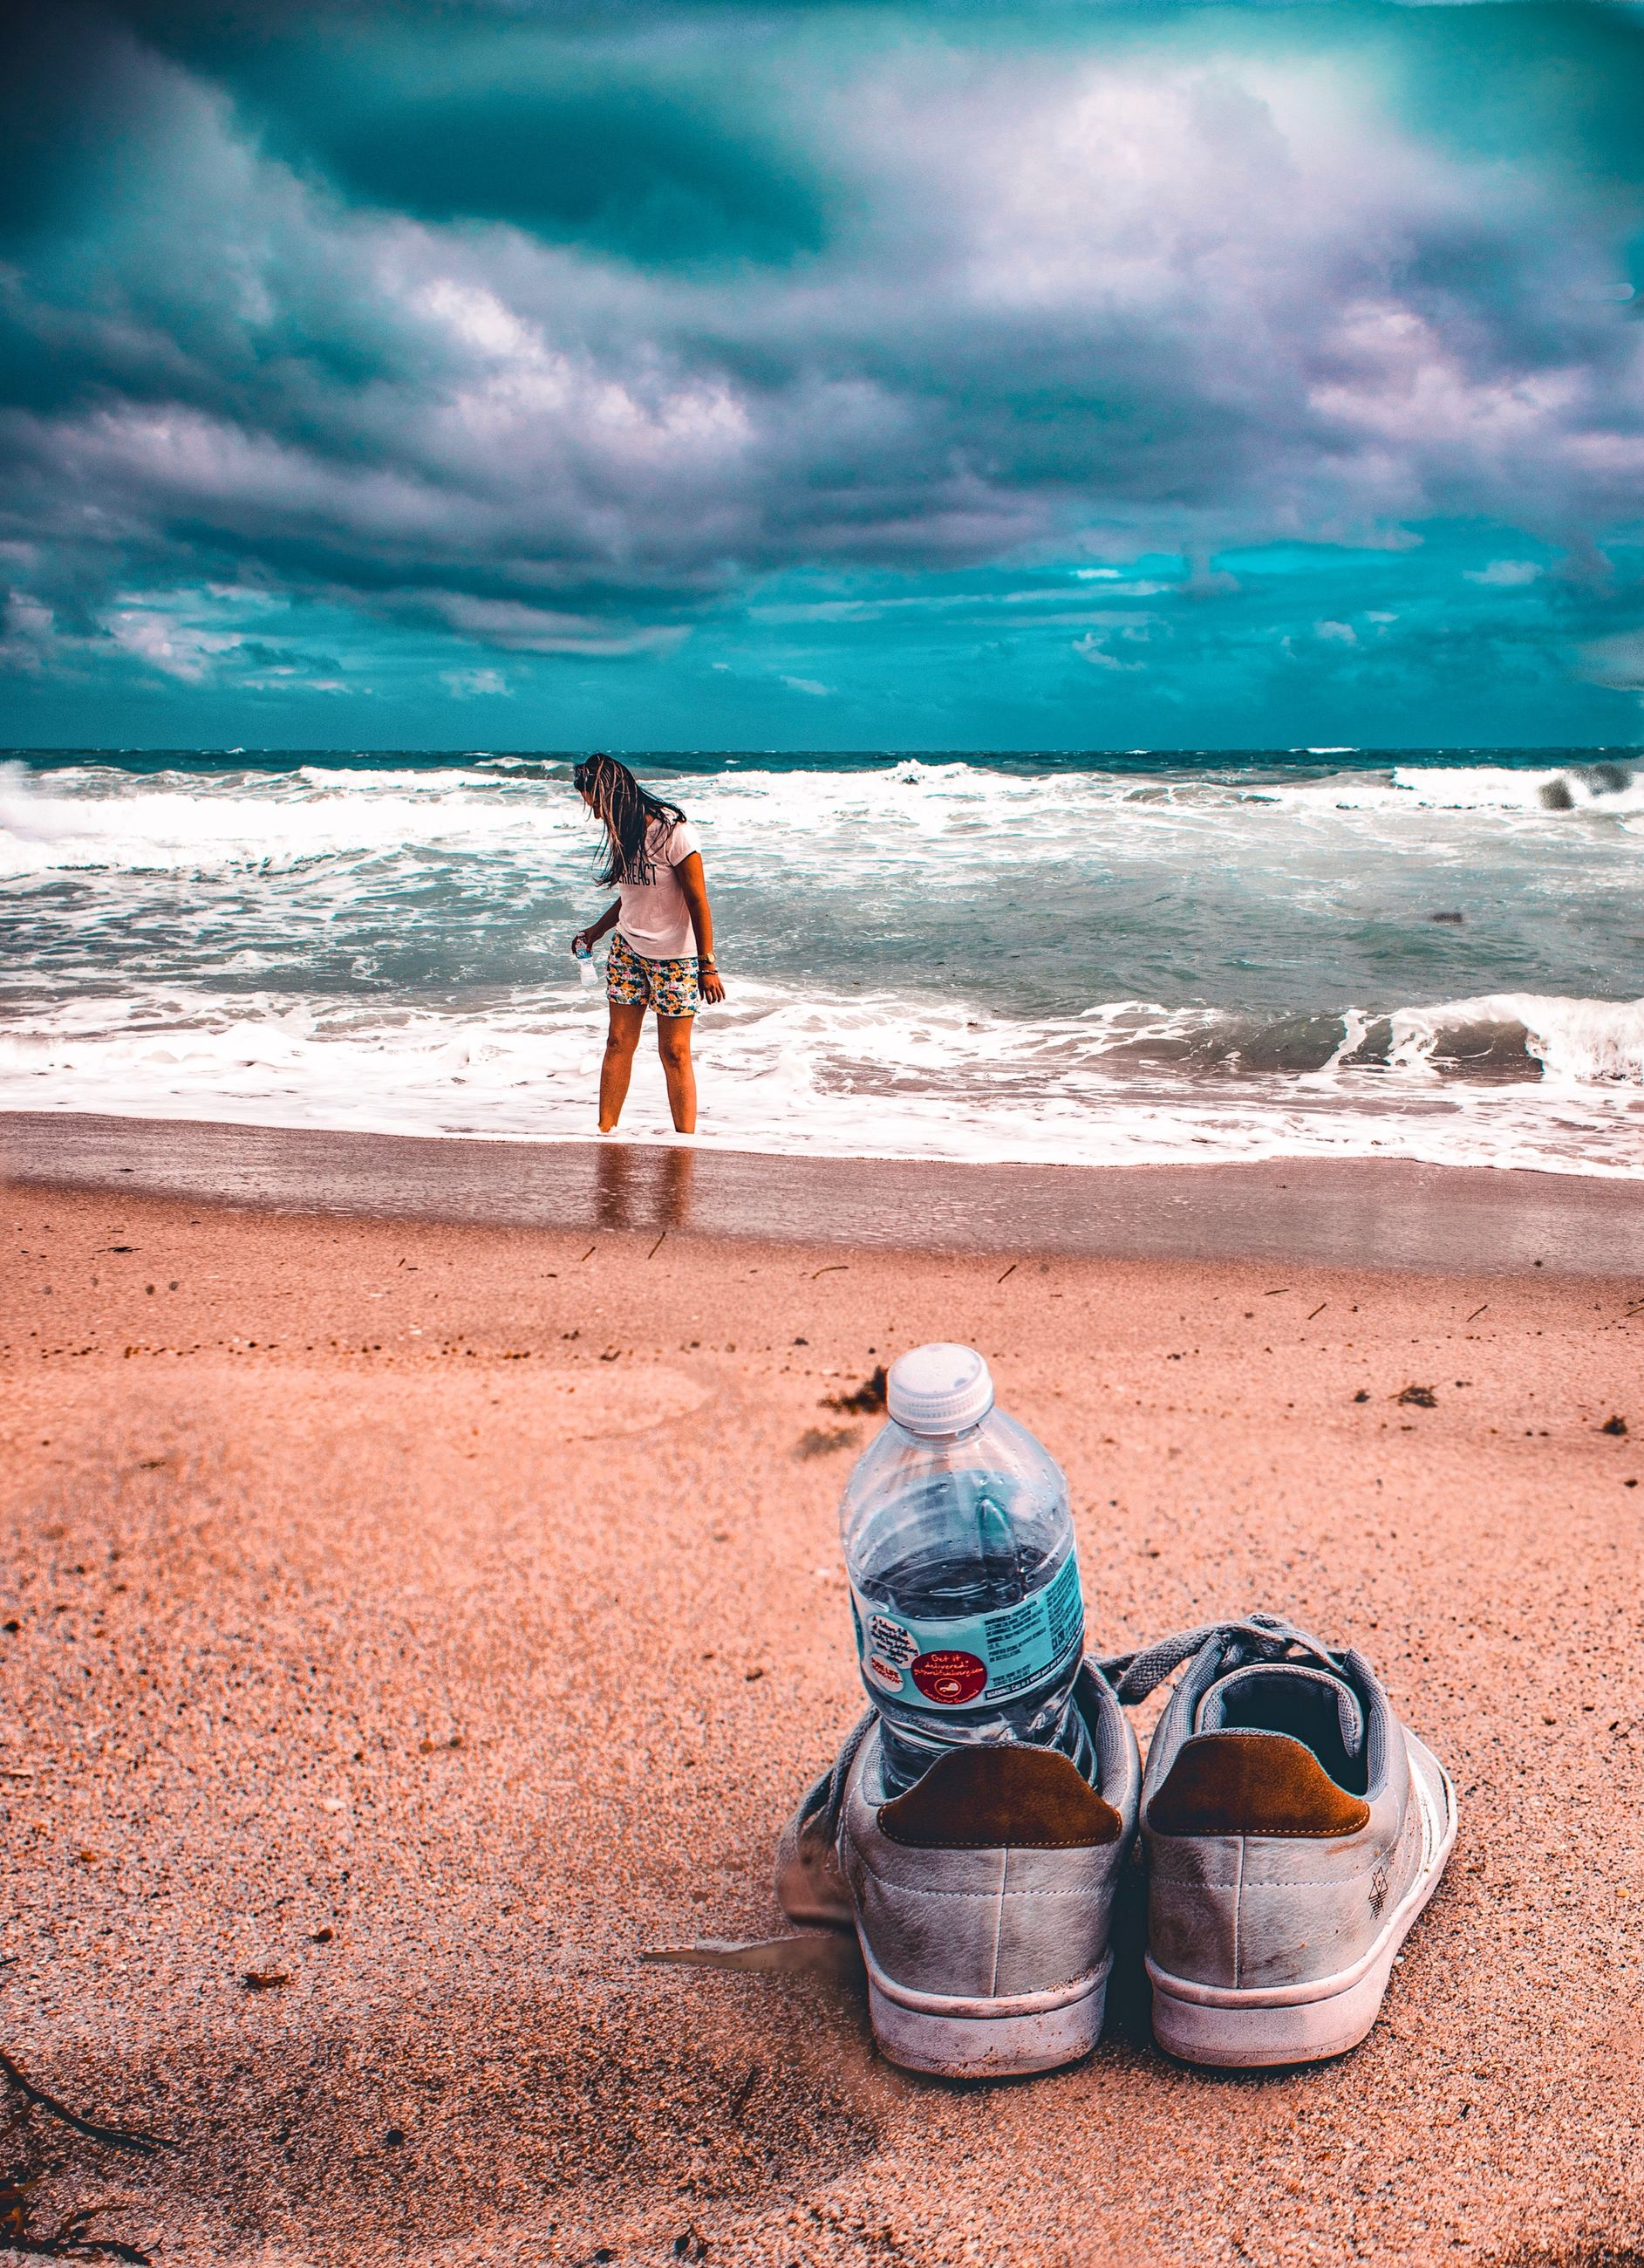 land, beach, water, sea, sky, cloud - sky, real people, men, full length, sand, leisure activity, nature, beauty in nature, rear view, people, two people, lifestyles, day, outdoors, horizon over water